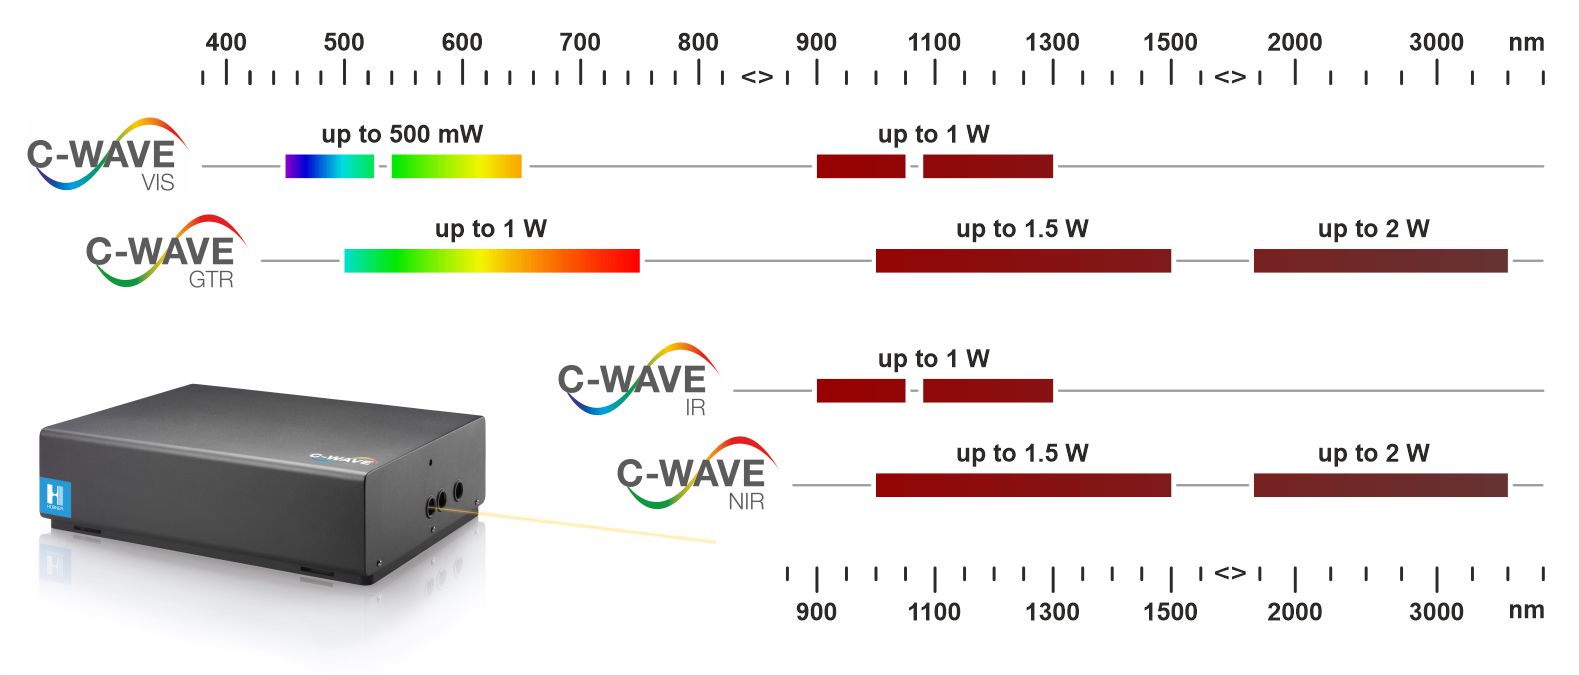 C-WAVE tuning range